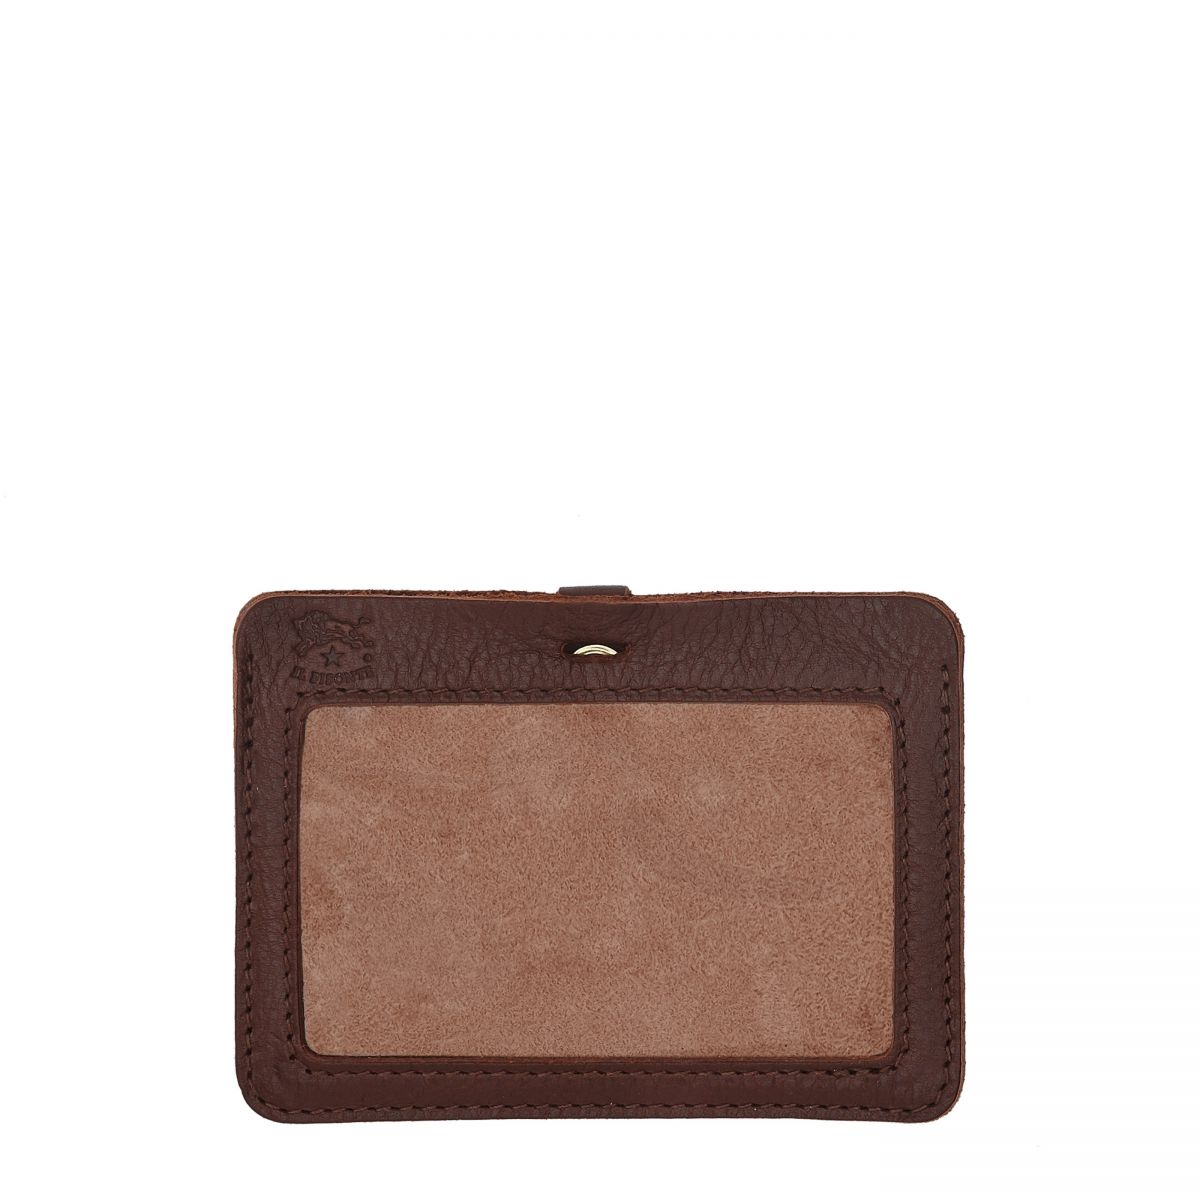 Card Case  in Cowhide Double Leather SCC026 color Brown | Details